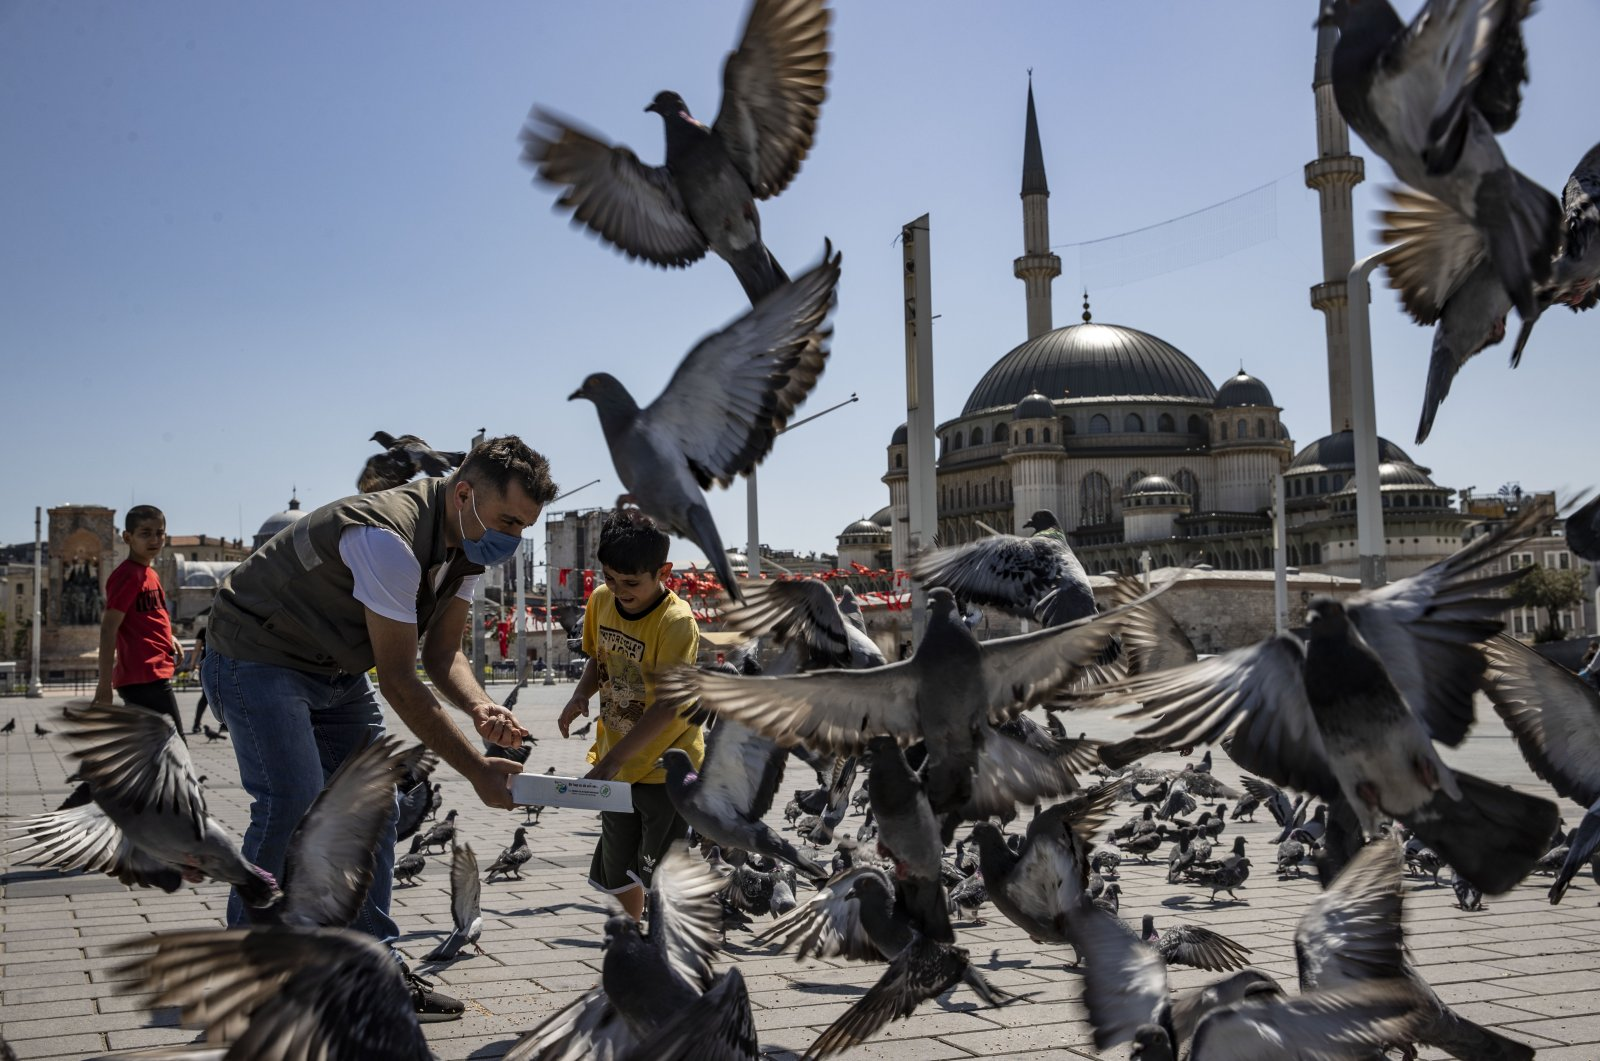 Turkish nature protection authorities help feed the birds and street animals during the total lockdown in Istanbul's famous Taksim Square, Turkey, May 15, 2021 (AA File Photo)